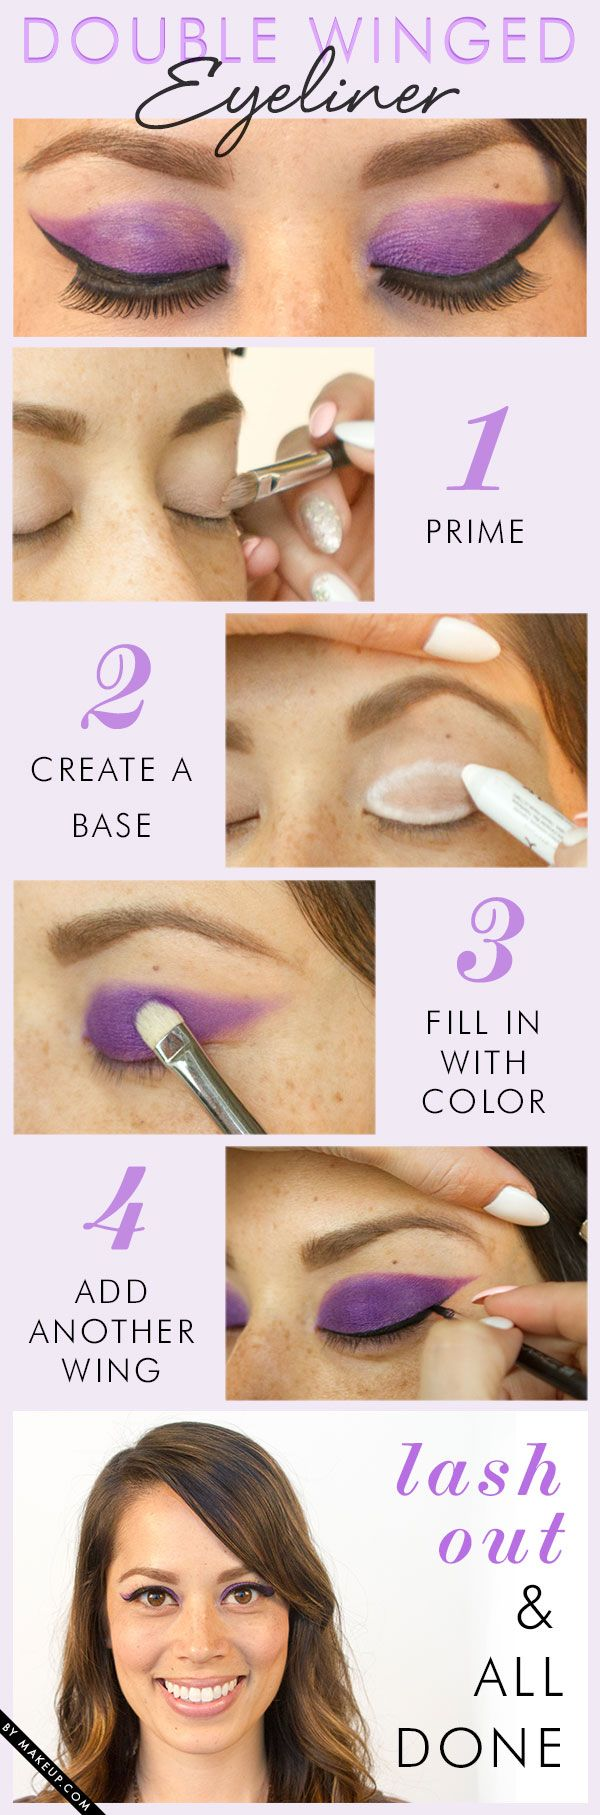 You've mastered winged eyeliner, but what about DOUBLE winged eyeliner!? Check out this eye makeup tutorial and try it yourself!